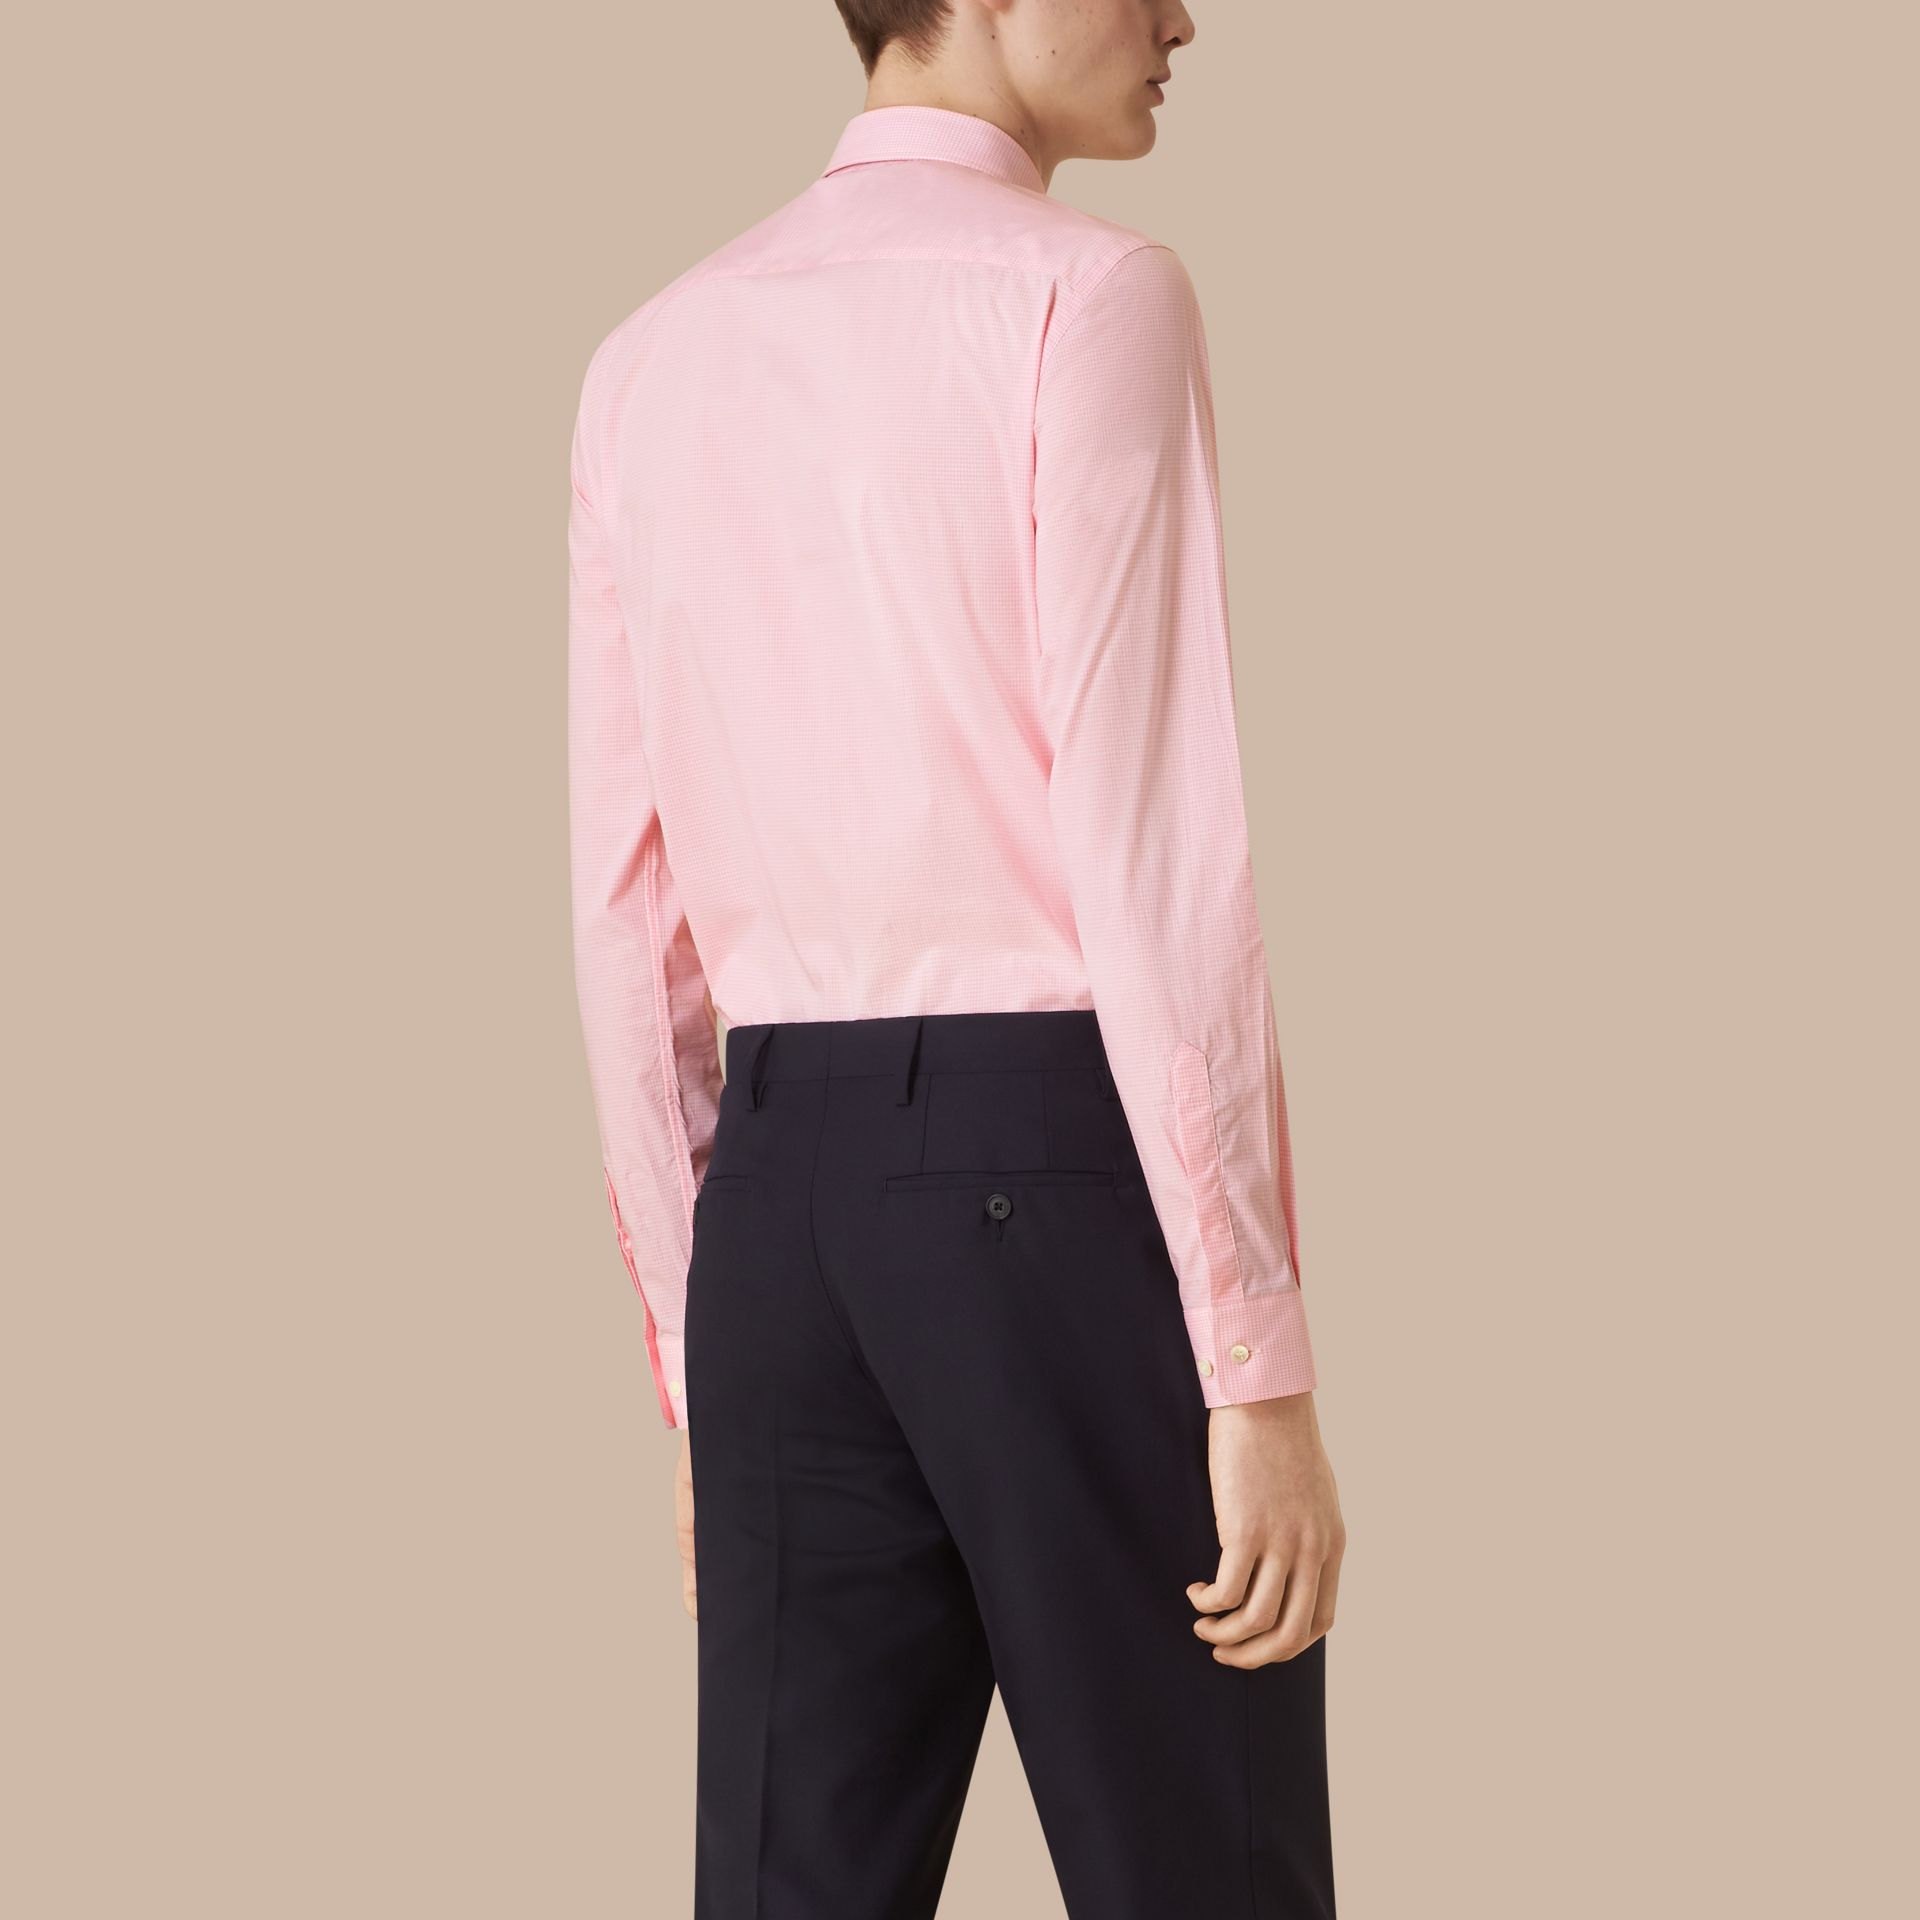 City pink Slim Fit Gingham Cotton Poplin Shirt City Pink - gallery image 3